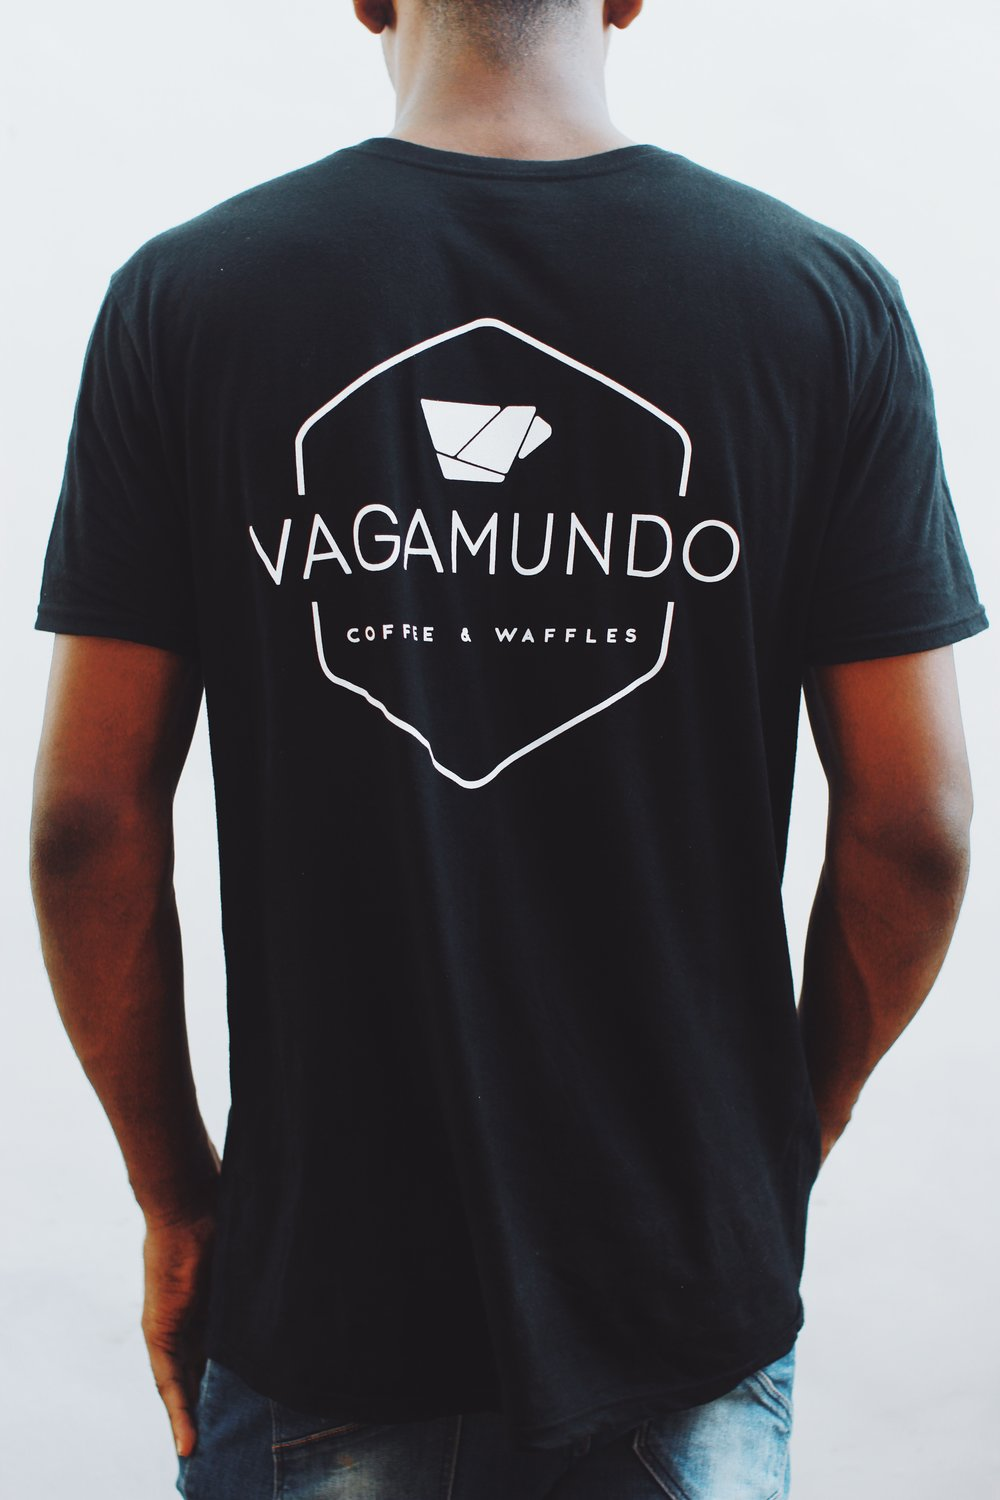 Vagamundo Shirt (Black - ft. back side) *Size Large in photo $900rd / ~$20 usd